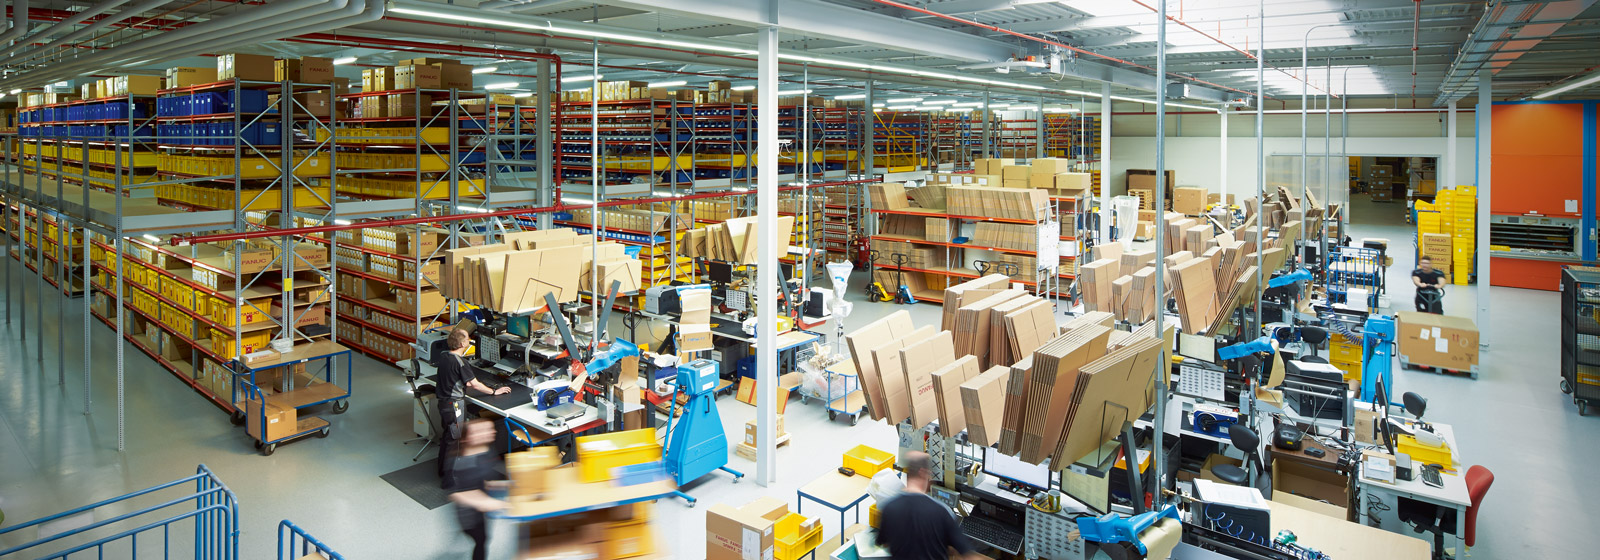 FANUC parts warehouse